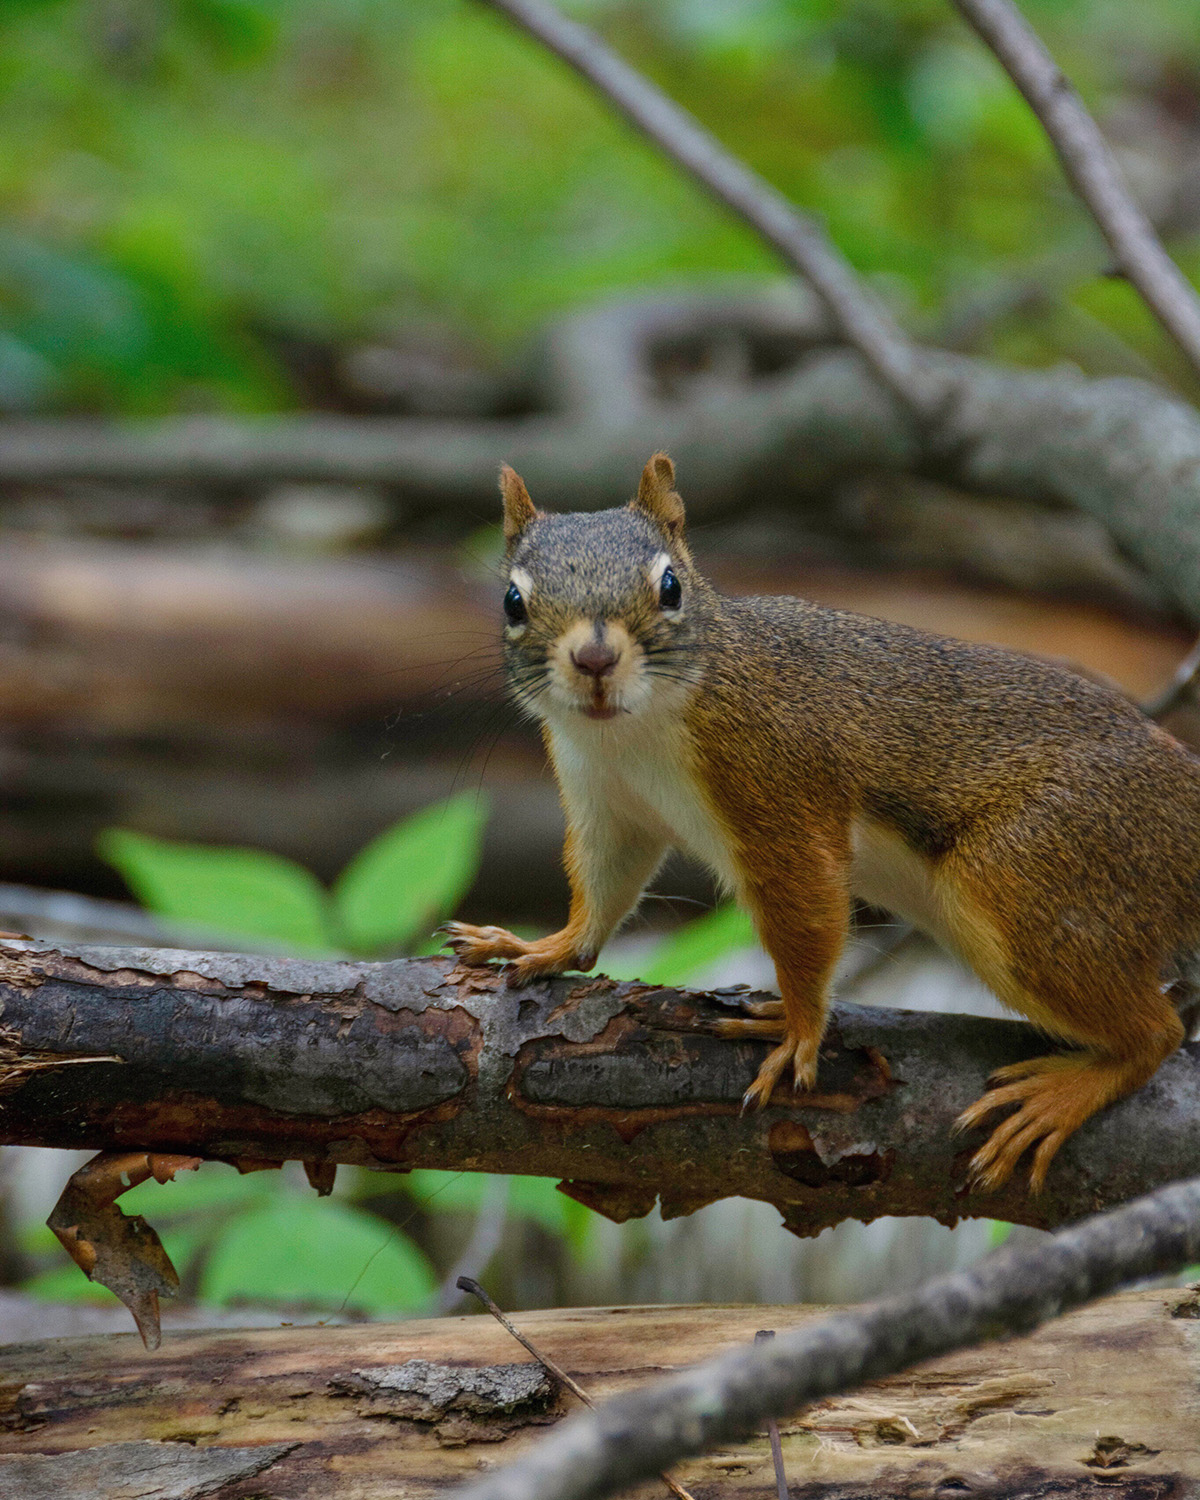 An American red squirrel stands on a branch